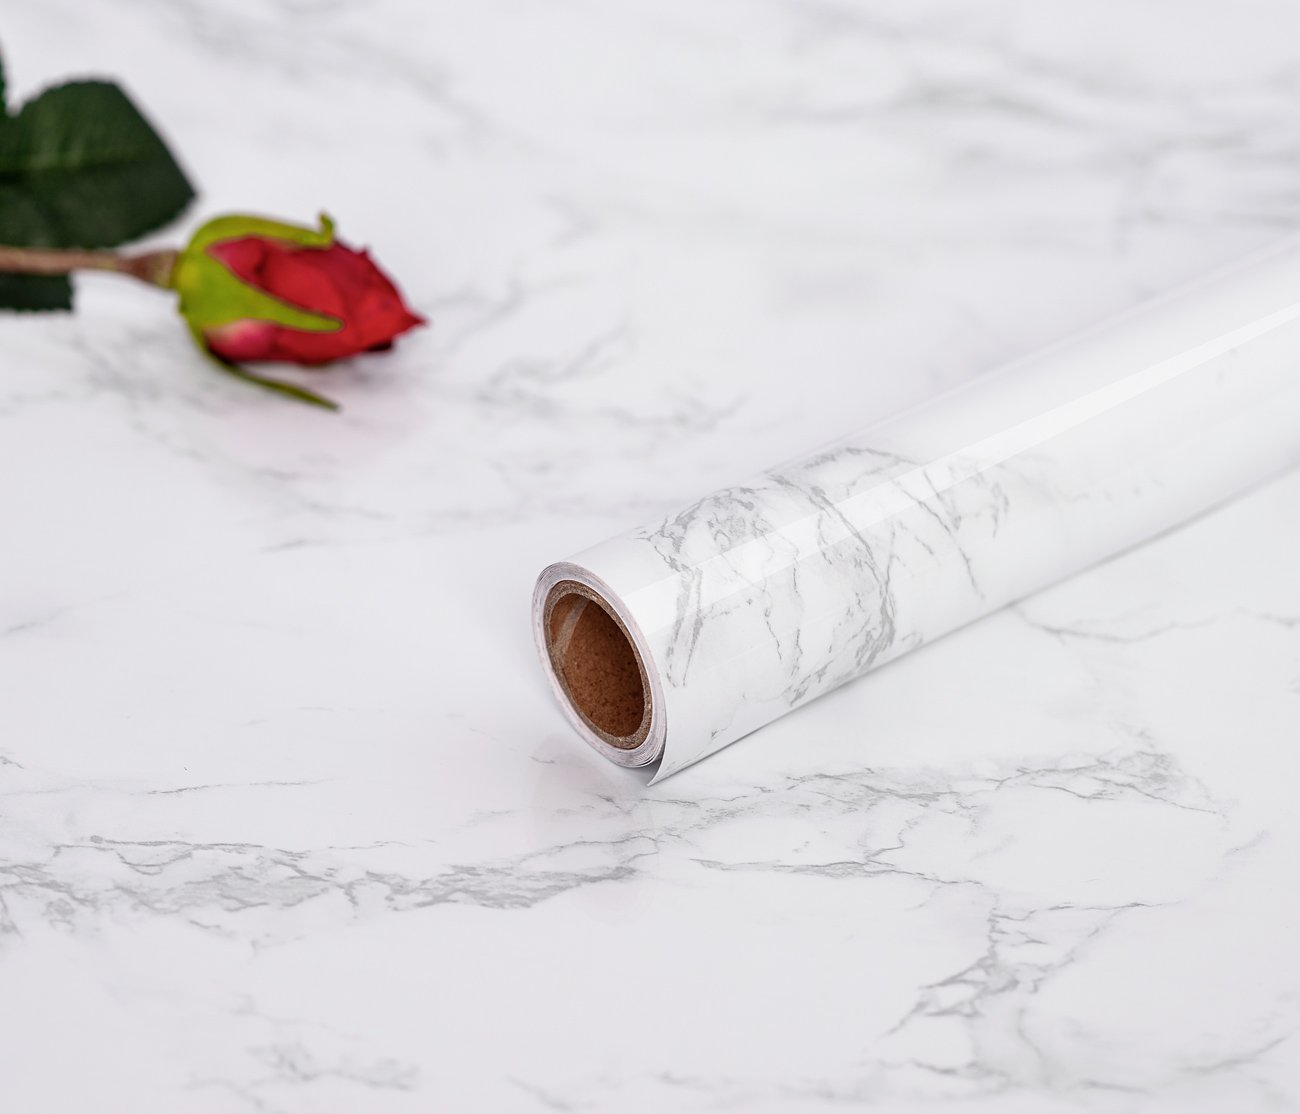 45 cm × 200 cm Marble Contact Paper PVC Material DIY Self Adhesive Vinyl Stickers Film Renovation Sticker Wallpaper for Kitchen Cupboards Worktops Counter Top Kitchen Worktop Furniture Renovation Sticky Marble Paper Marble Sticker Book Covering Film Conta